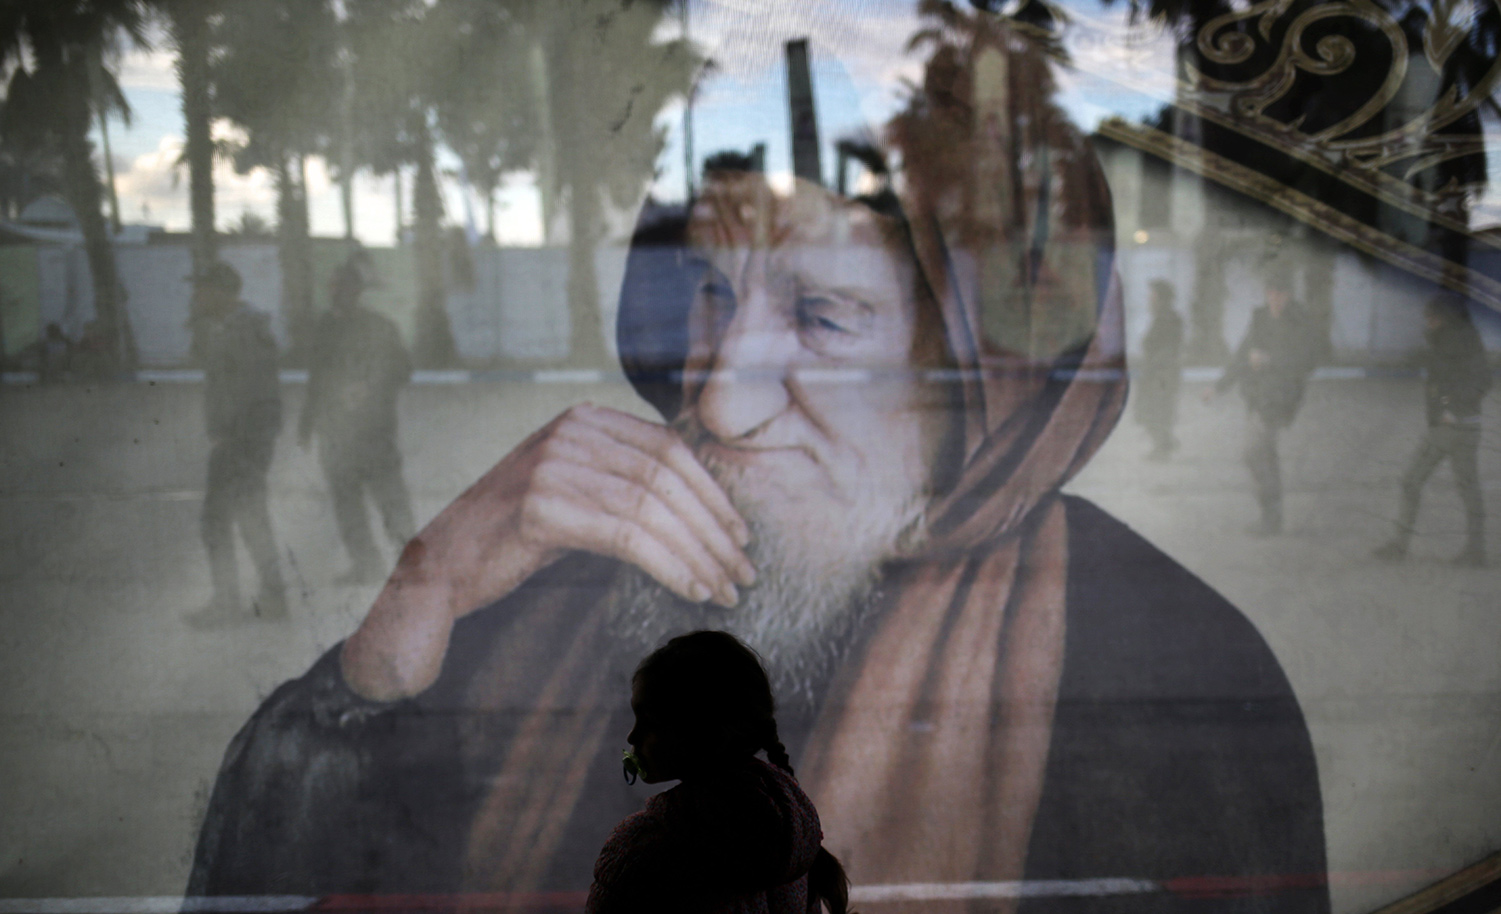 Israeli Jews walk past an image of Rabbi Israel Abuhatseira, known as the Baba Sali, during the annual pilgrimage to his grave in the southern Israeli town of Netivot, on January 31, 2017. MENAHEM KAHANA/AFP/Getty Images.